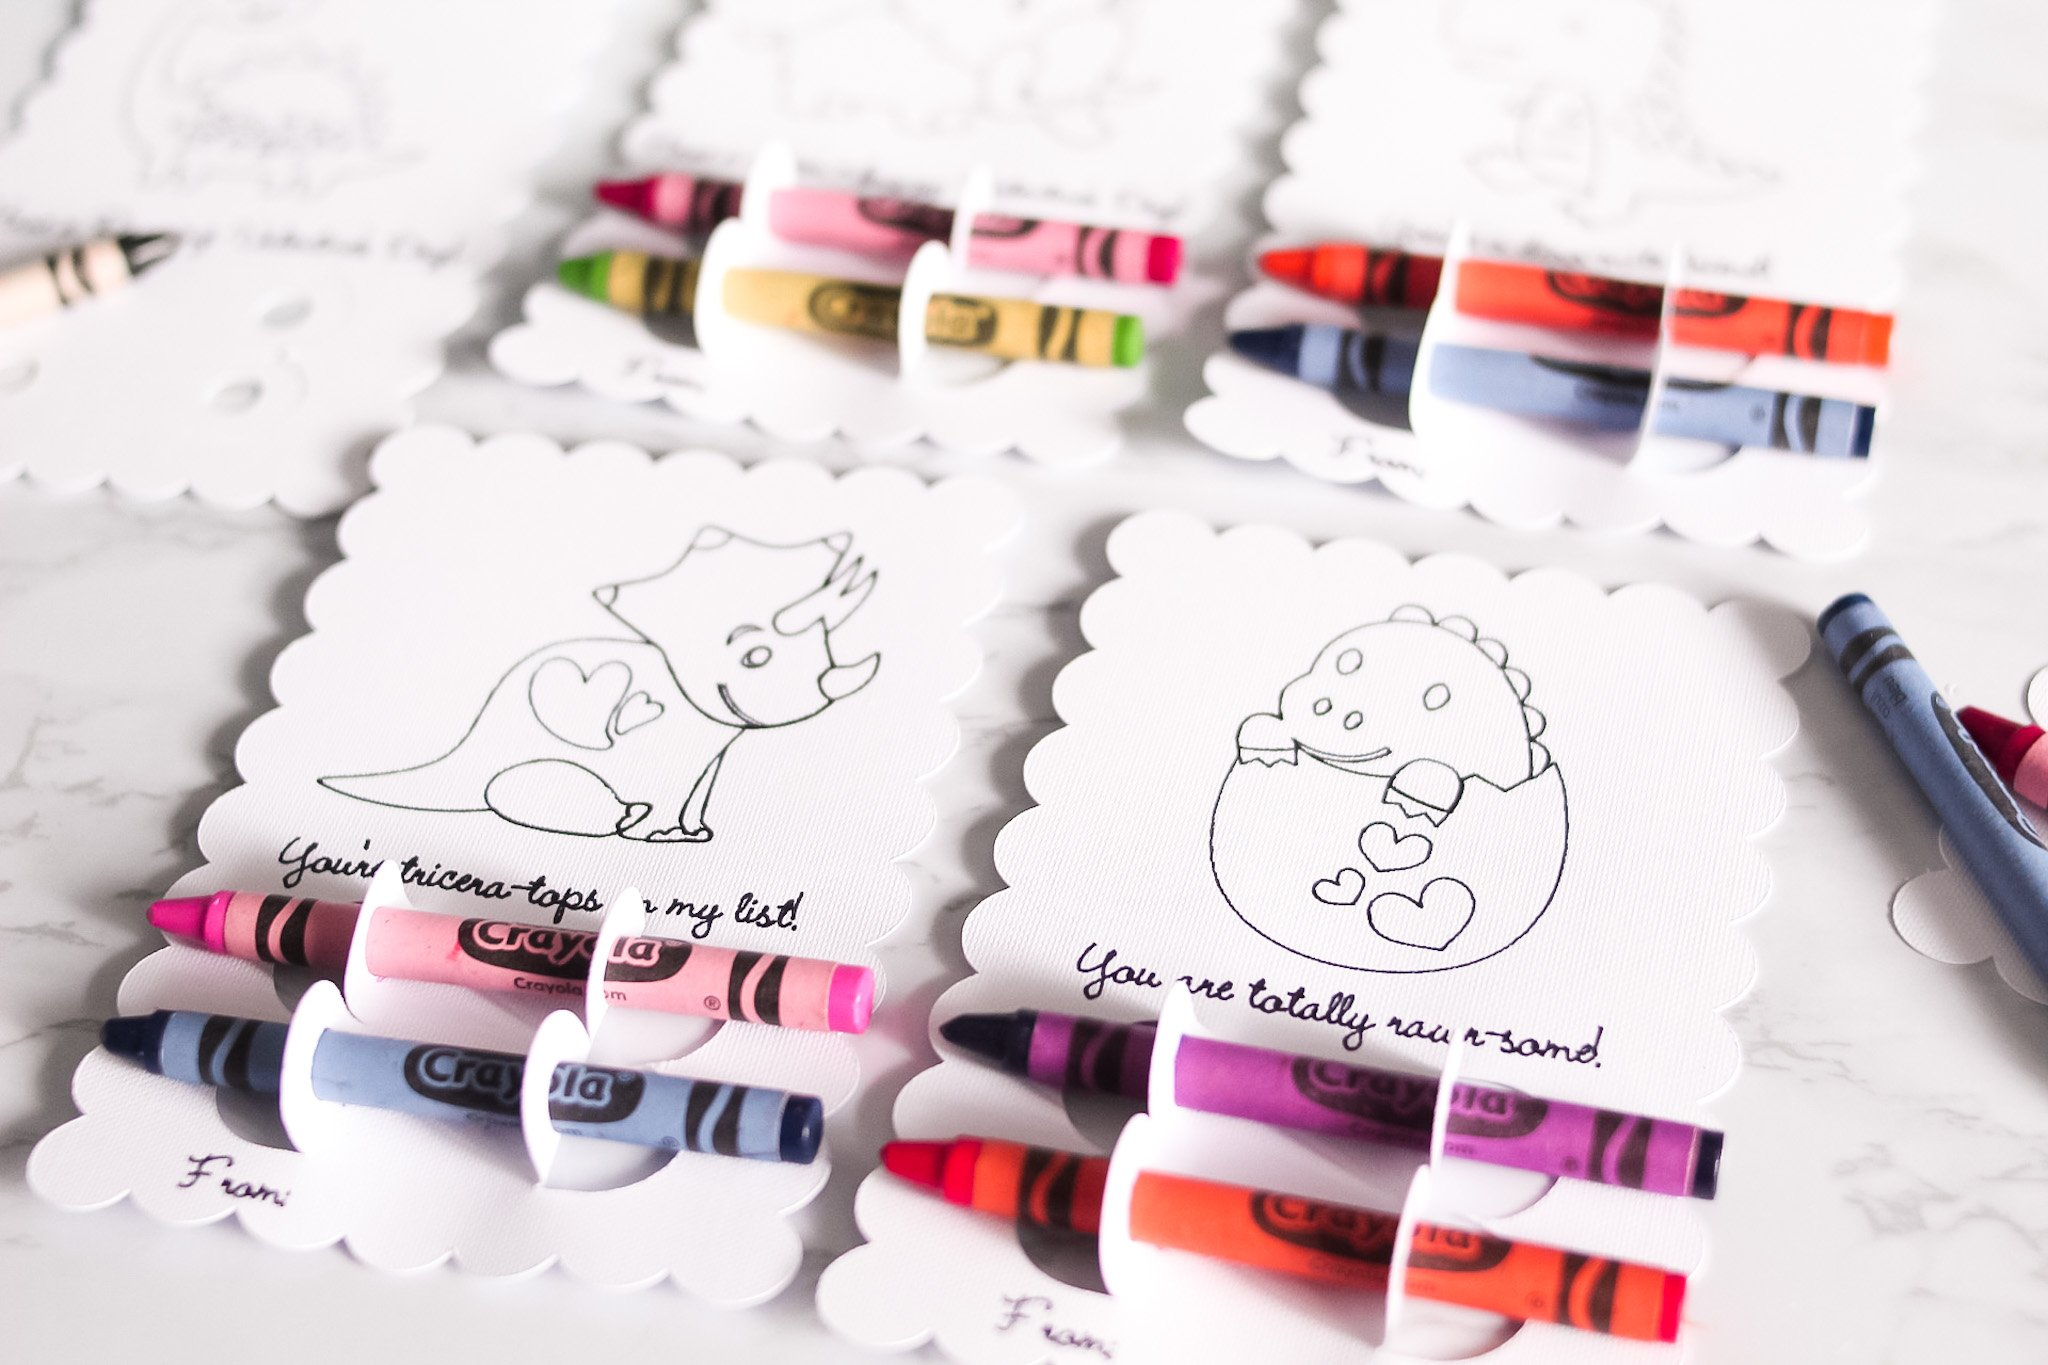 crayons inserted into crayon holders of cards